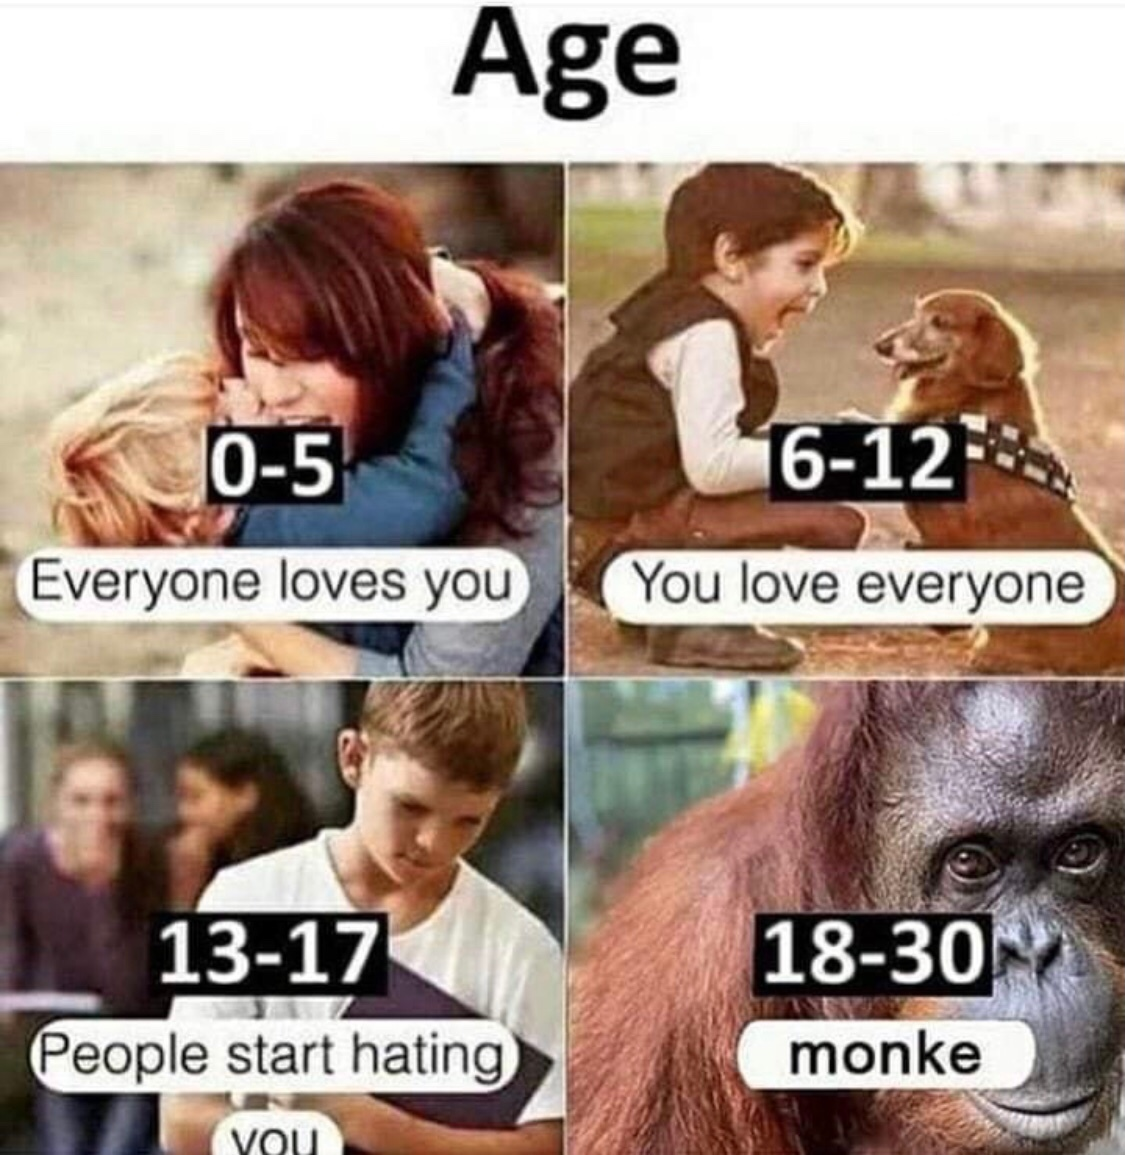 I hope you have accepted the monke lifestyle - meme